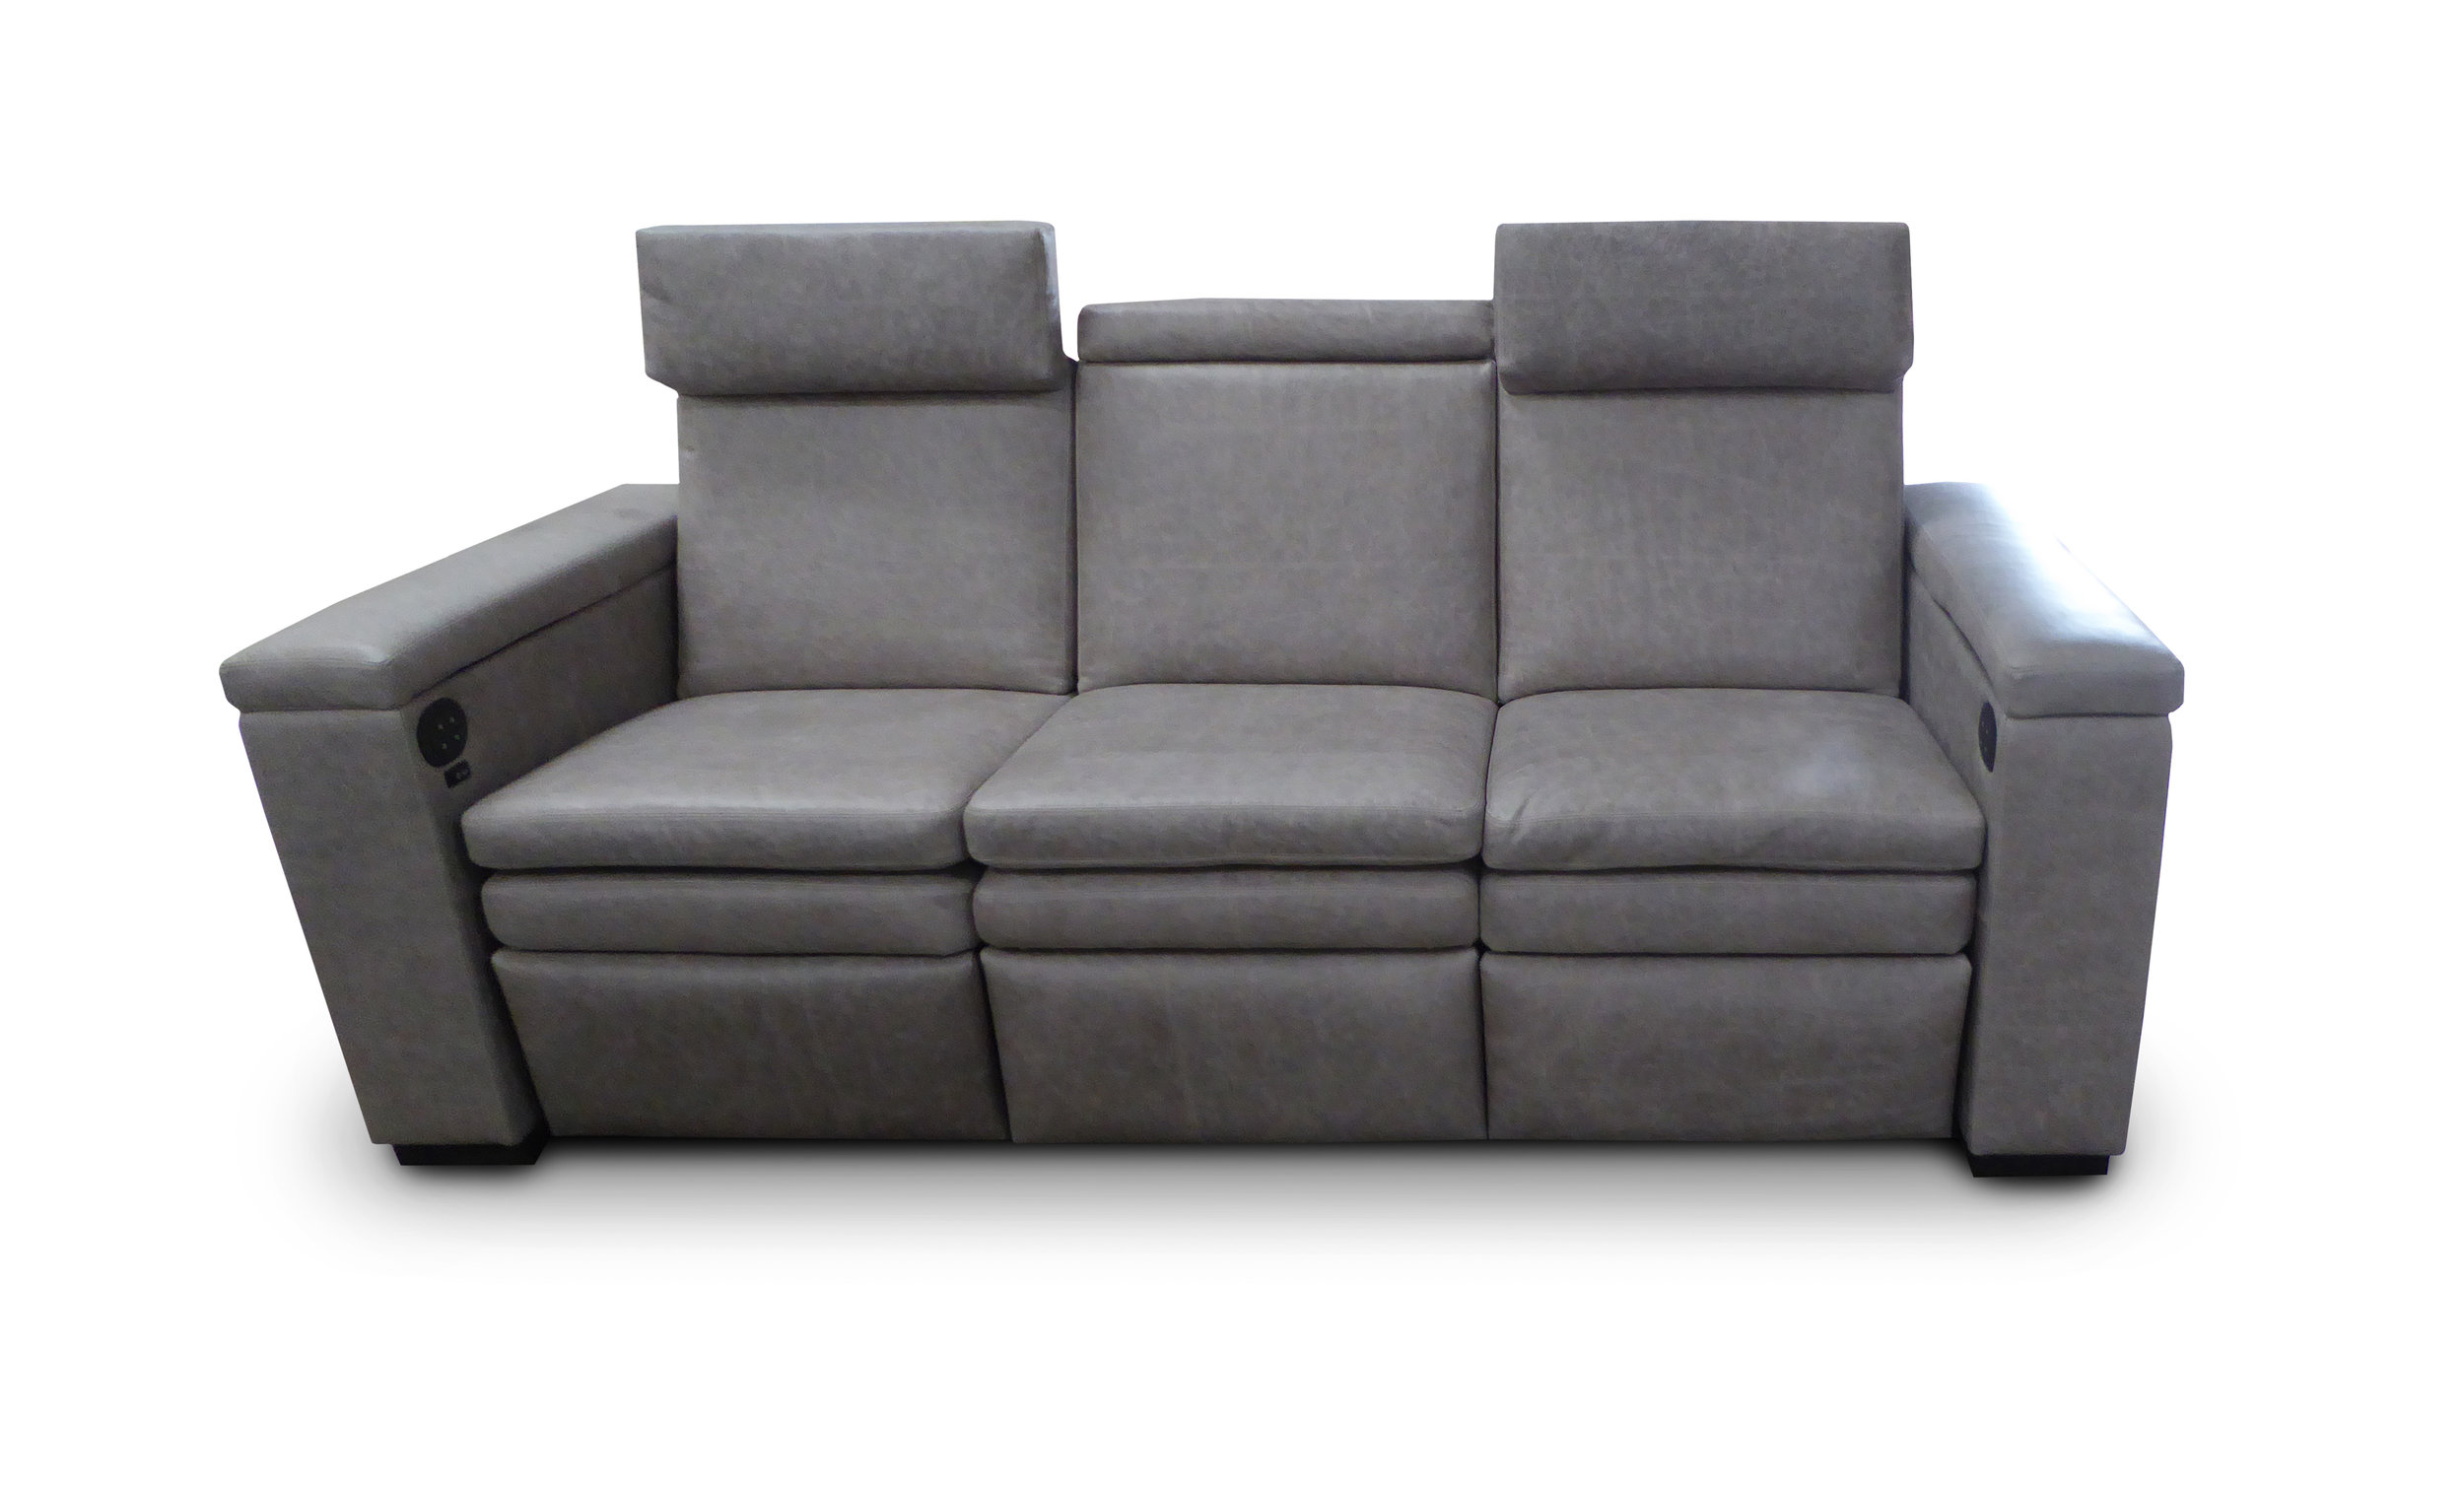 Reclining Sofa | Headrests up